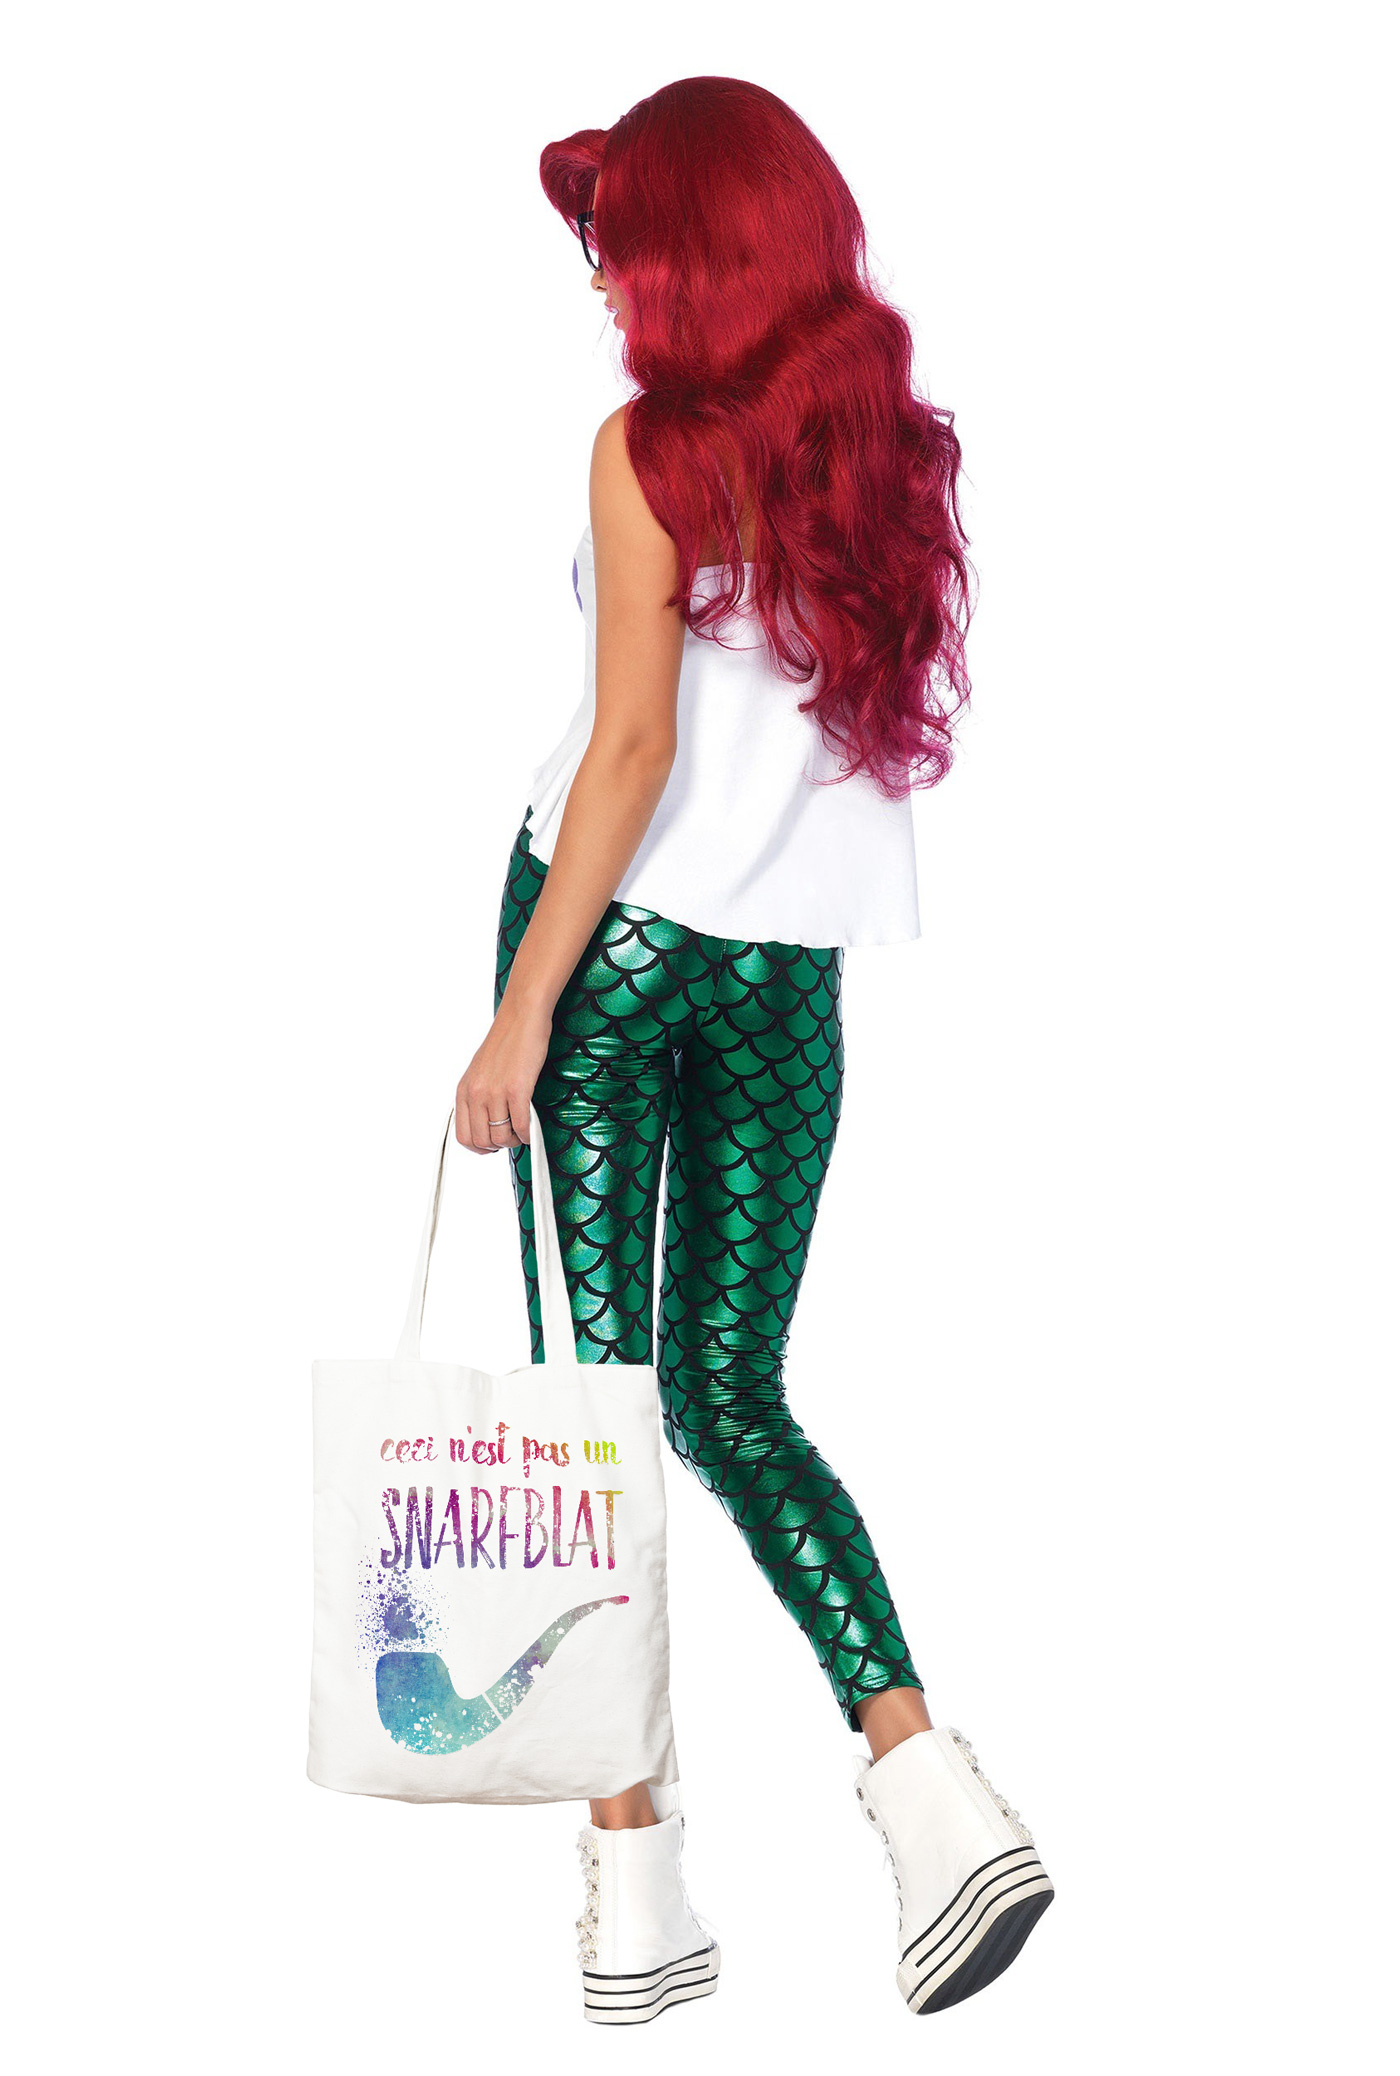 hipster ariel costume with snarfblat tote bag swag